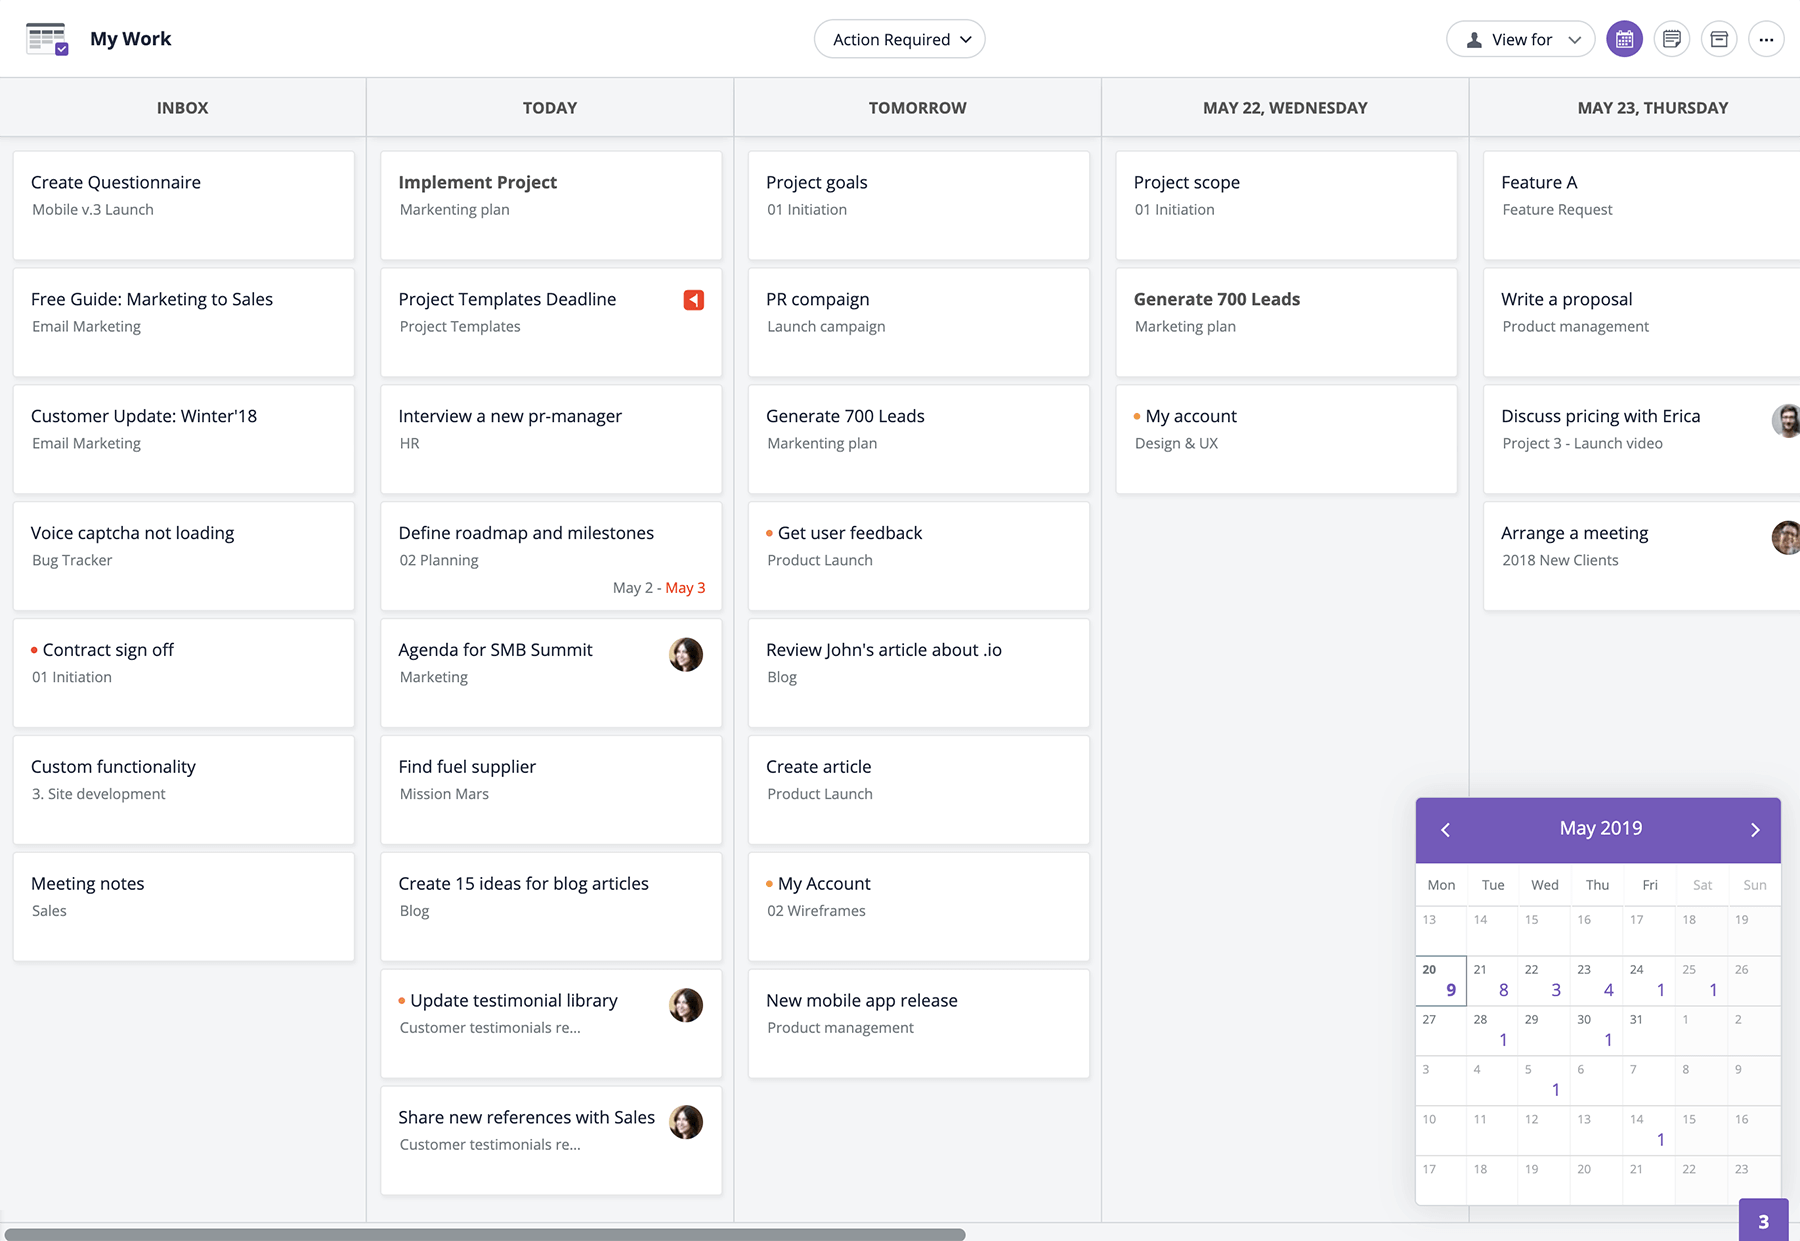 GoodDay dashboard - employee scheduling software